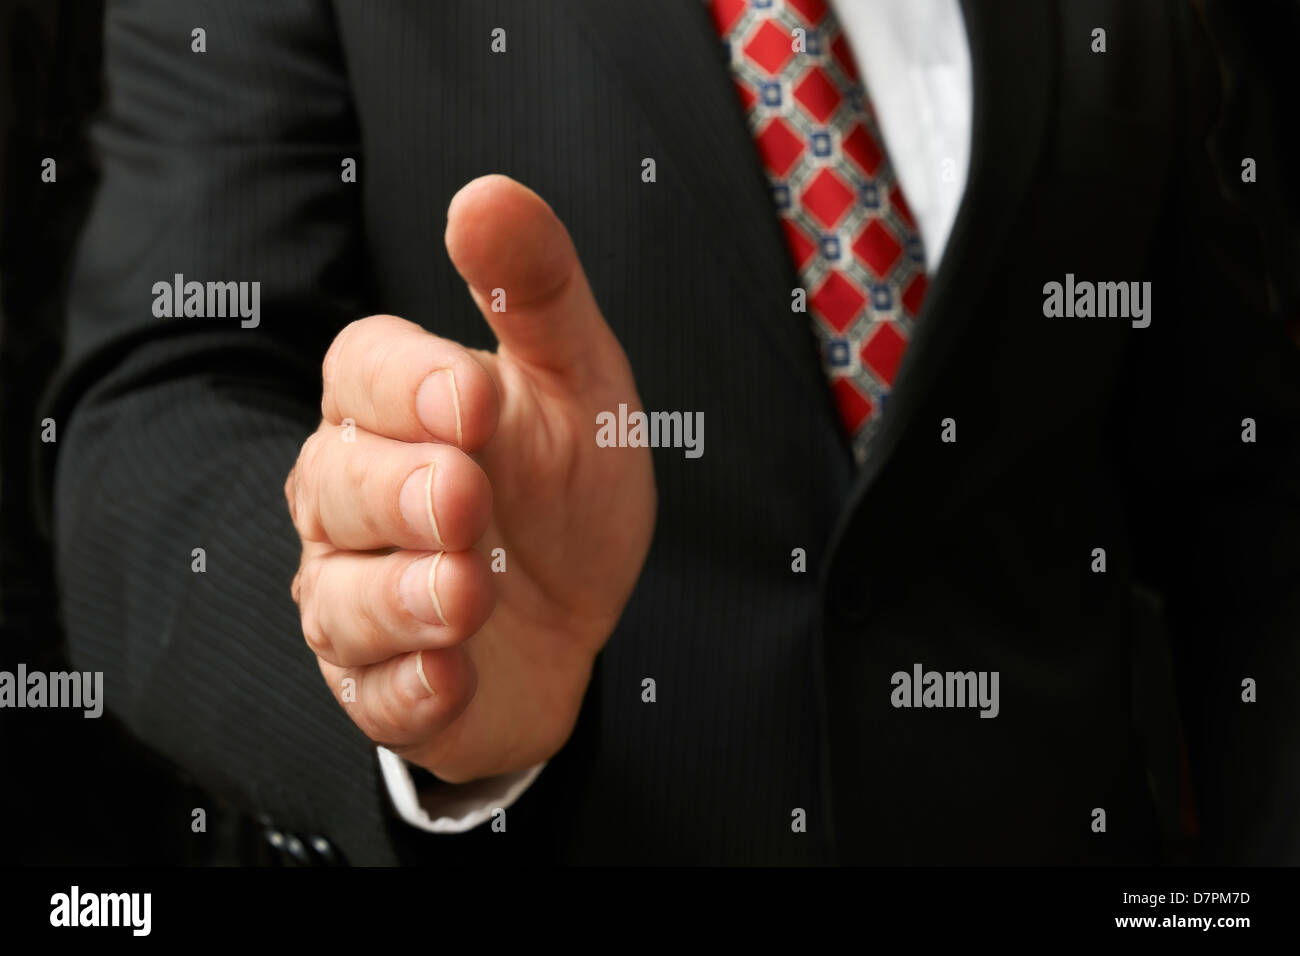 closeup of businessman's hand outstretched for a handshake Stock Photo